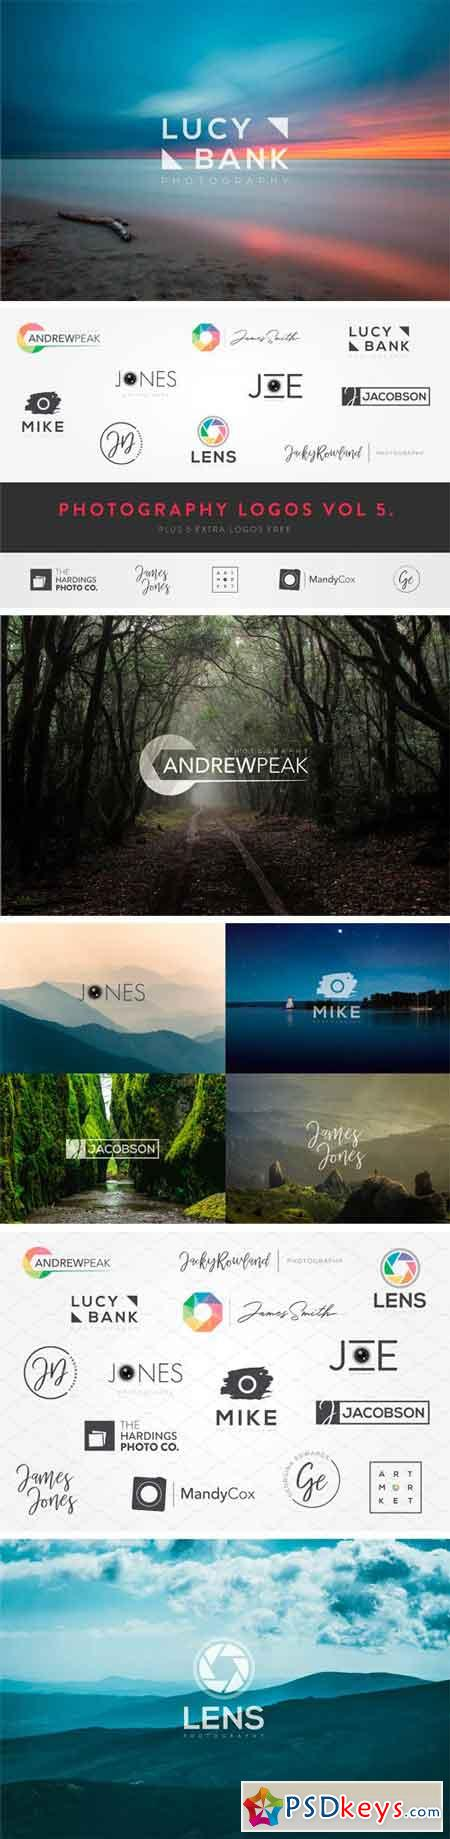 Photography Logos Vol 5 2174174